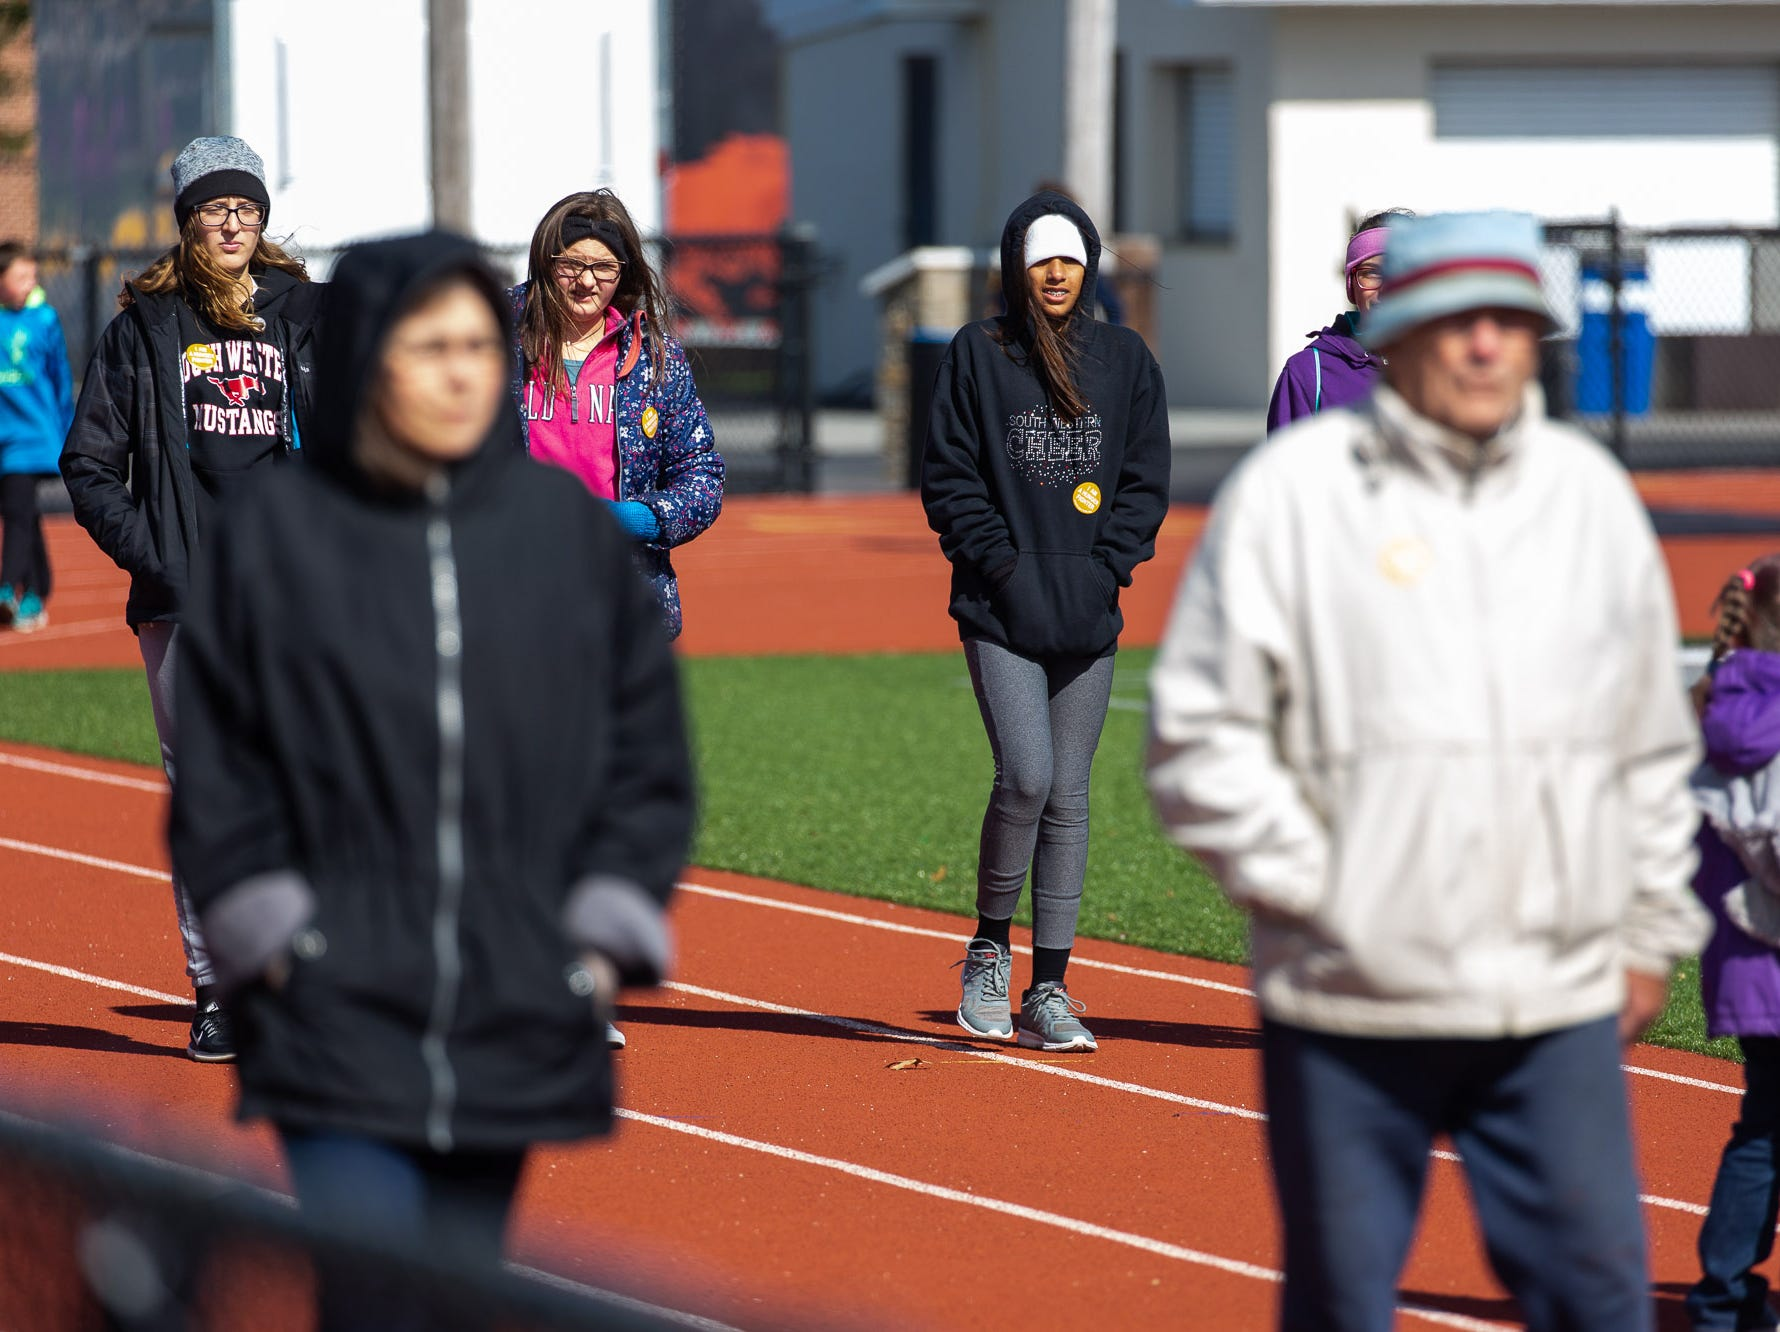 Participants walk the South Western High School track while taking part in the 42nd annual Hanover Area CROP Walk, Sunday, Oct. 21 in Hanover. The CROP Walk, hosted locally by the Hanover Area Council of Churches, raises money for programs to end hunger in the Hanover area, as well as worldwide through the Church World Service.